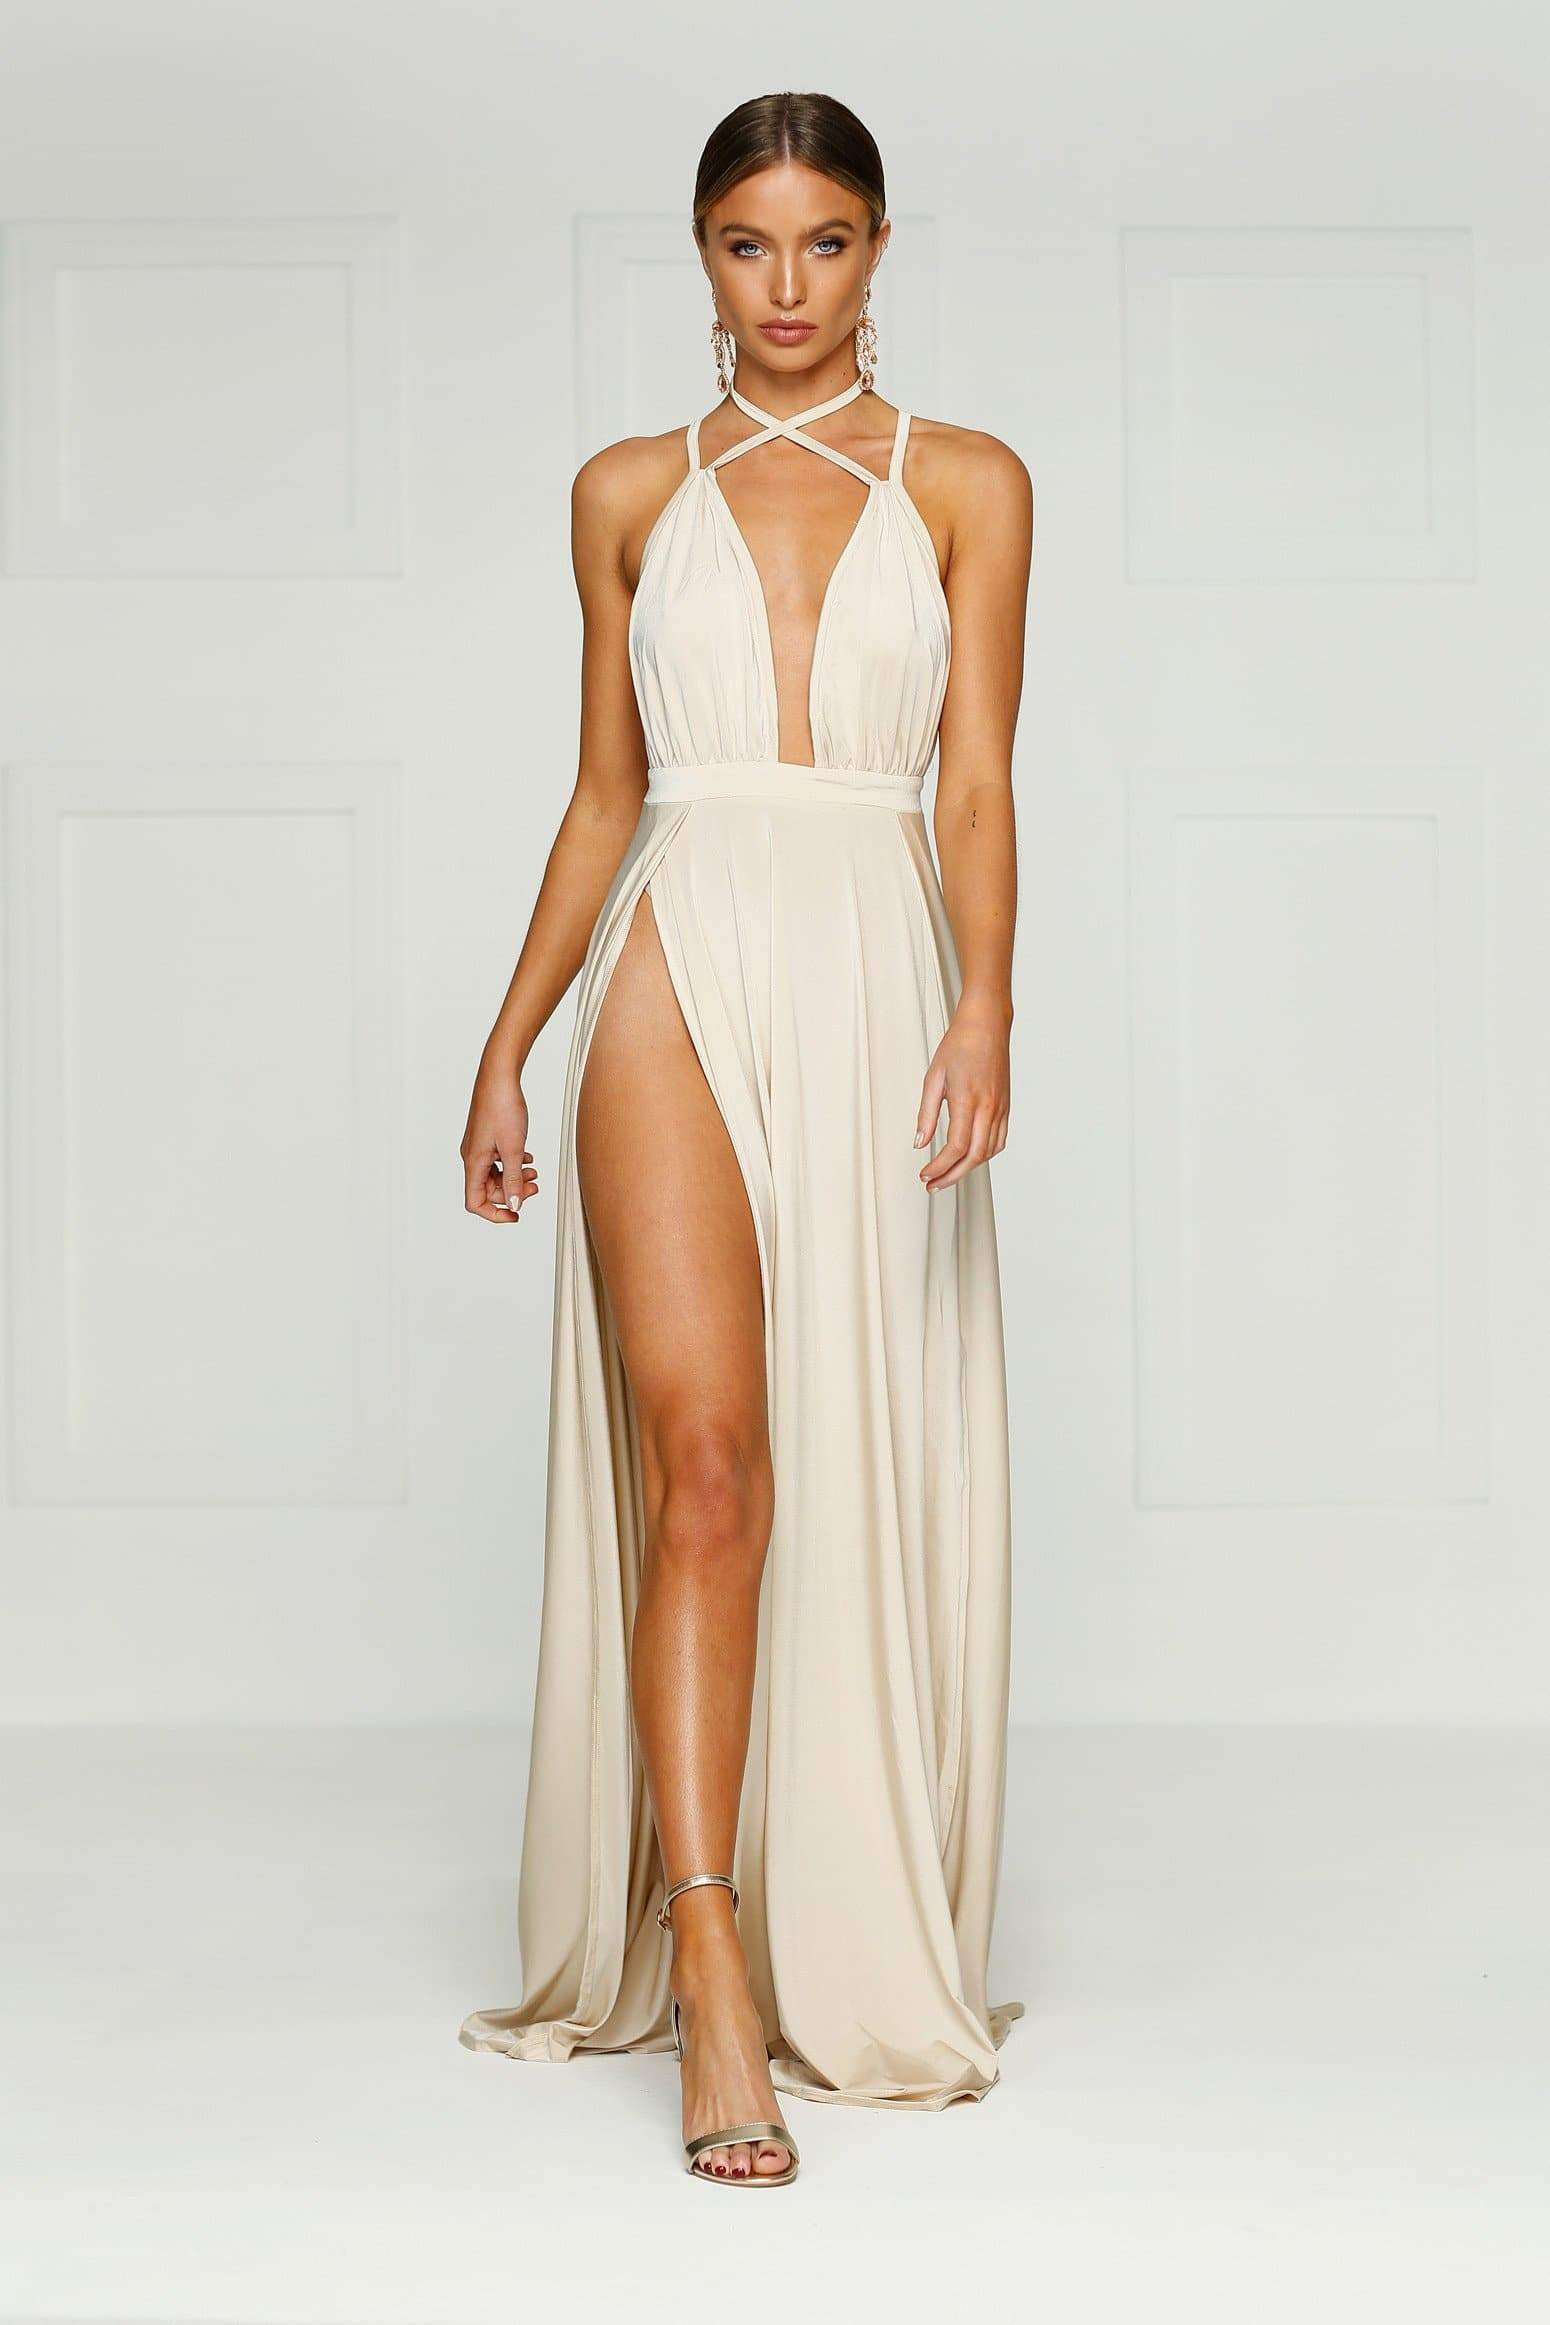 Stella Gown - Oyster Jersey V Neck Criss Cross Low Back Slits Dress